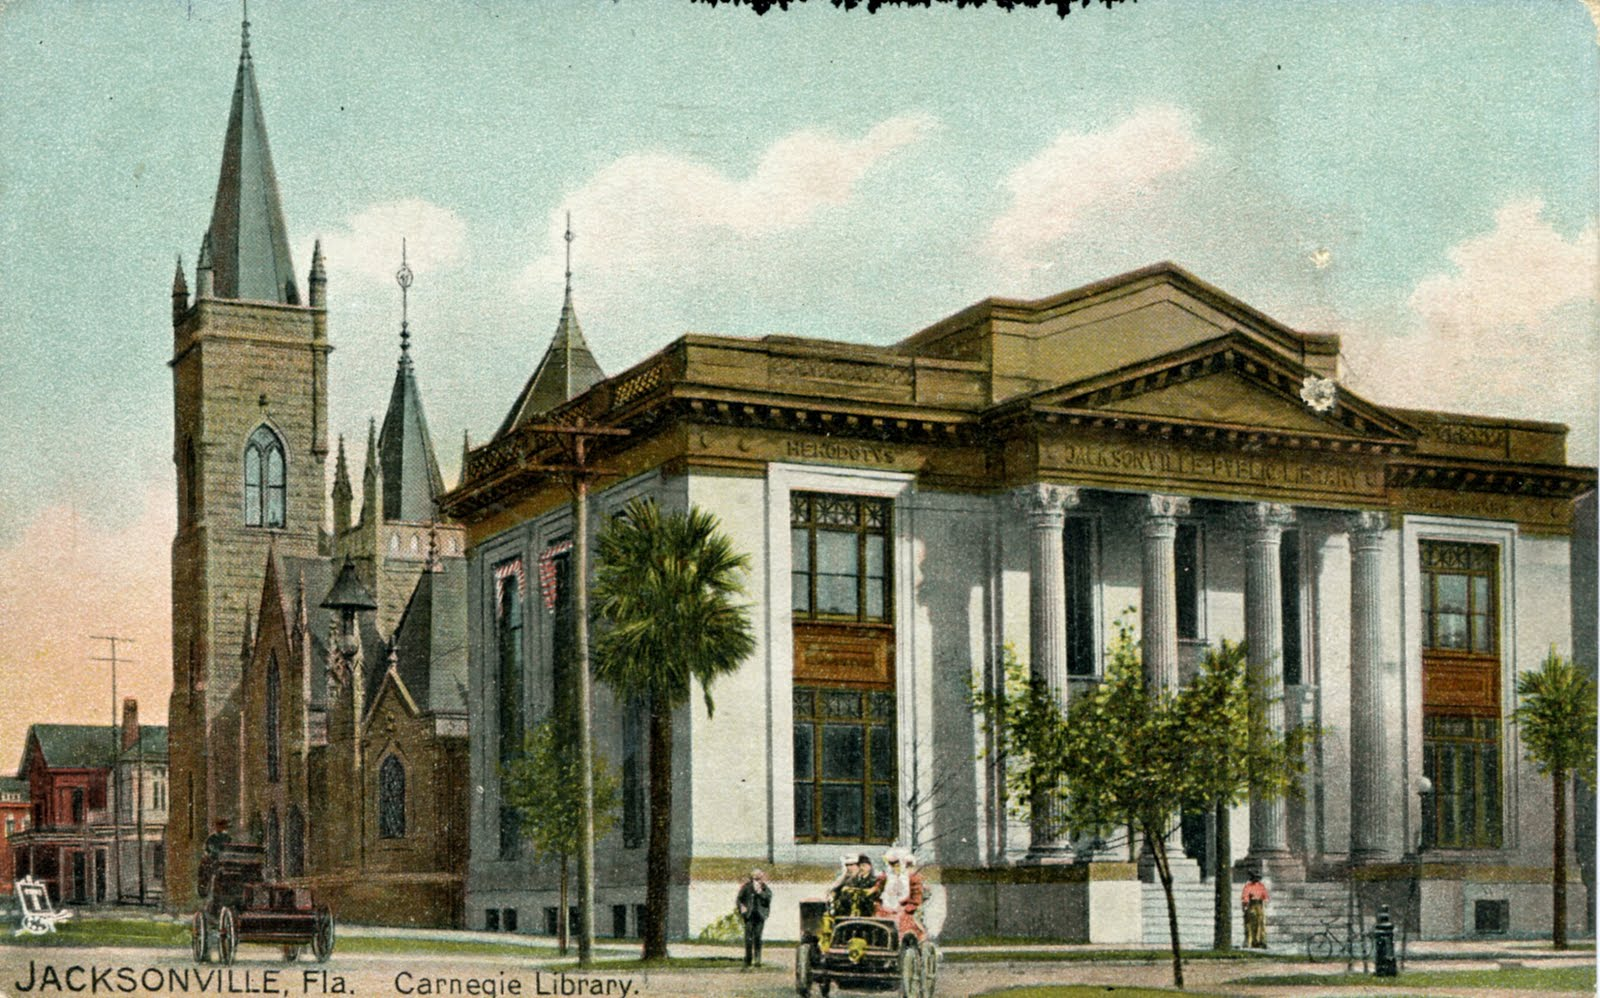 Library Postcards Carnegie Library, Jacksonville, Florida. Auto Insurance In Boston Mole Removal Process. Best Web Design Templates Wifi Packet Capture. Life Insurance No Medical Exam Required. Generate Reports From Excel Tv Patrol Negros. Insurance On A Smart Car Teflon Tape Gas Line. Self Storage In Lancaster Pa. Insurance Companies In Jacksonville Fl. Physical Therapy Management Software